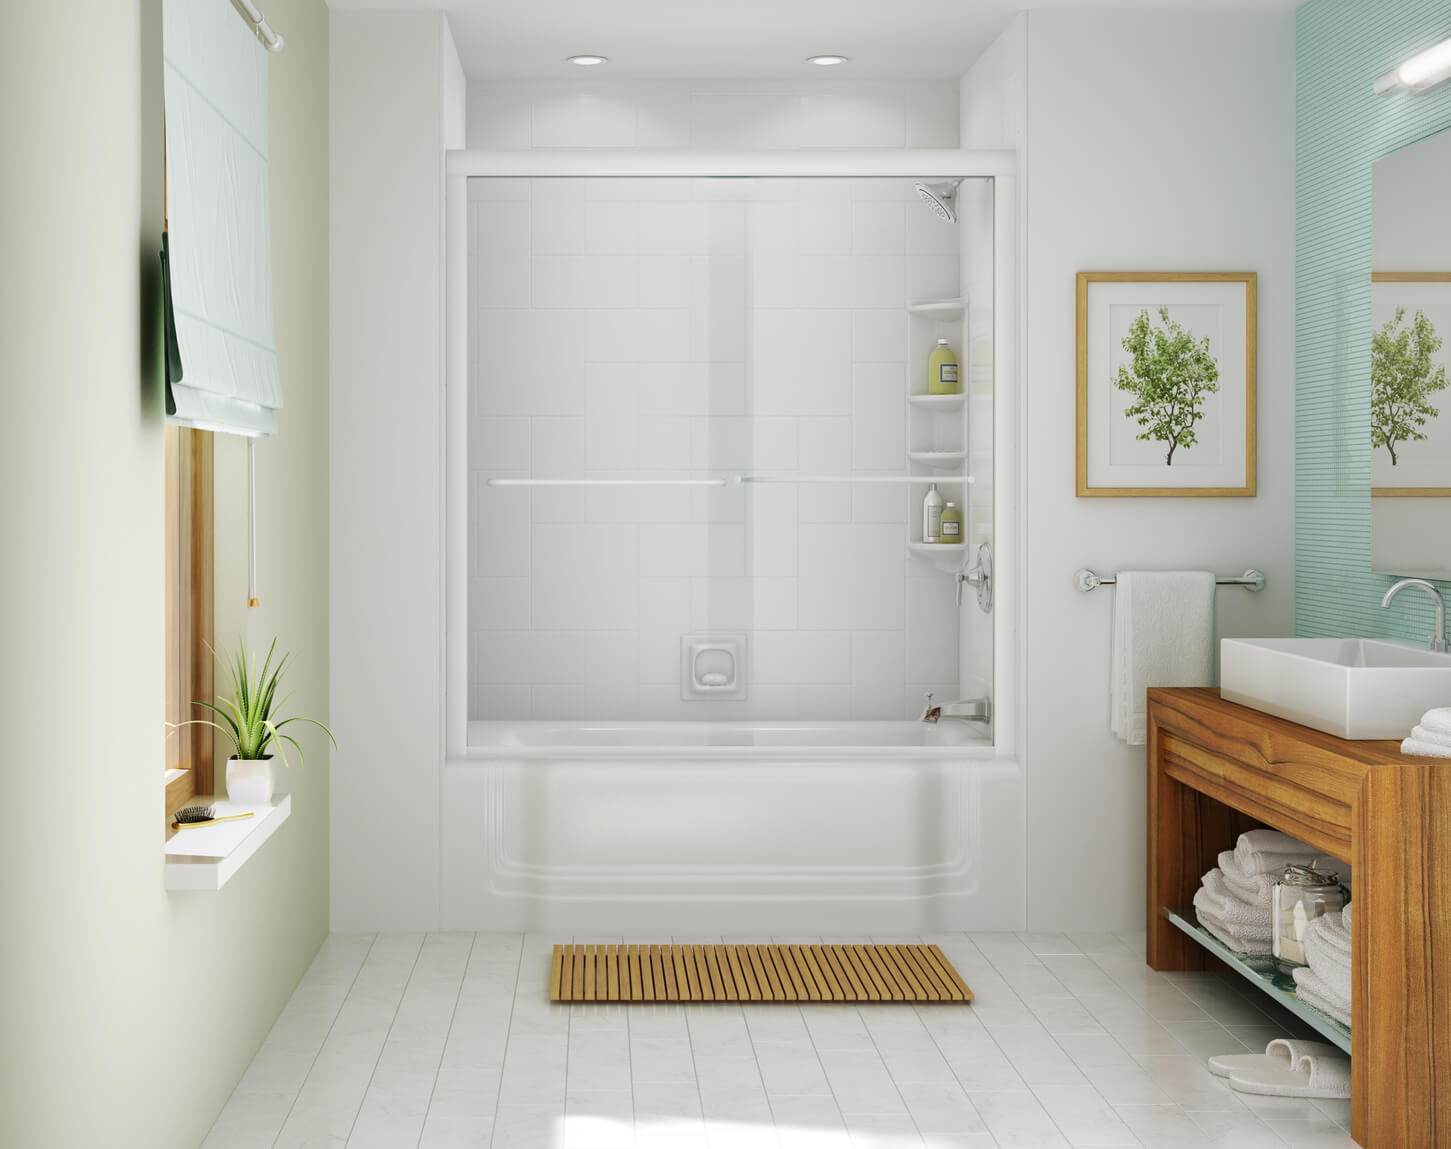 New Bathroom Design Styles And Trends, Decorating Ideas For Your Master Bathroom